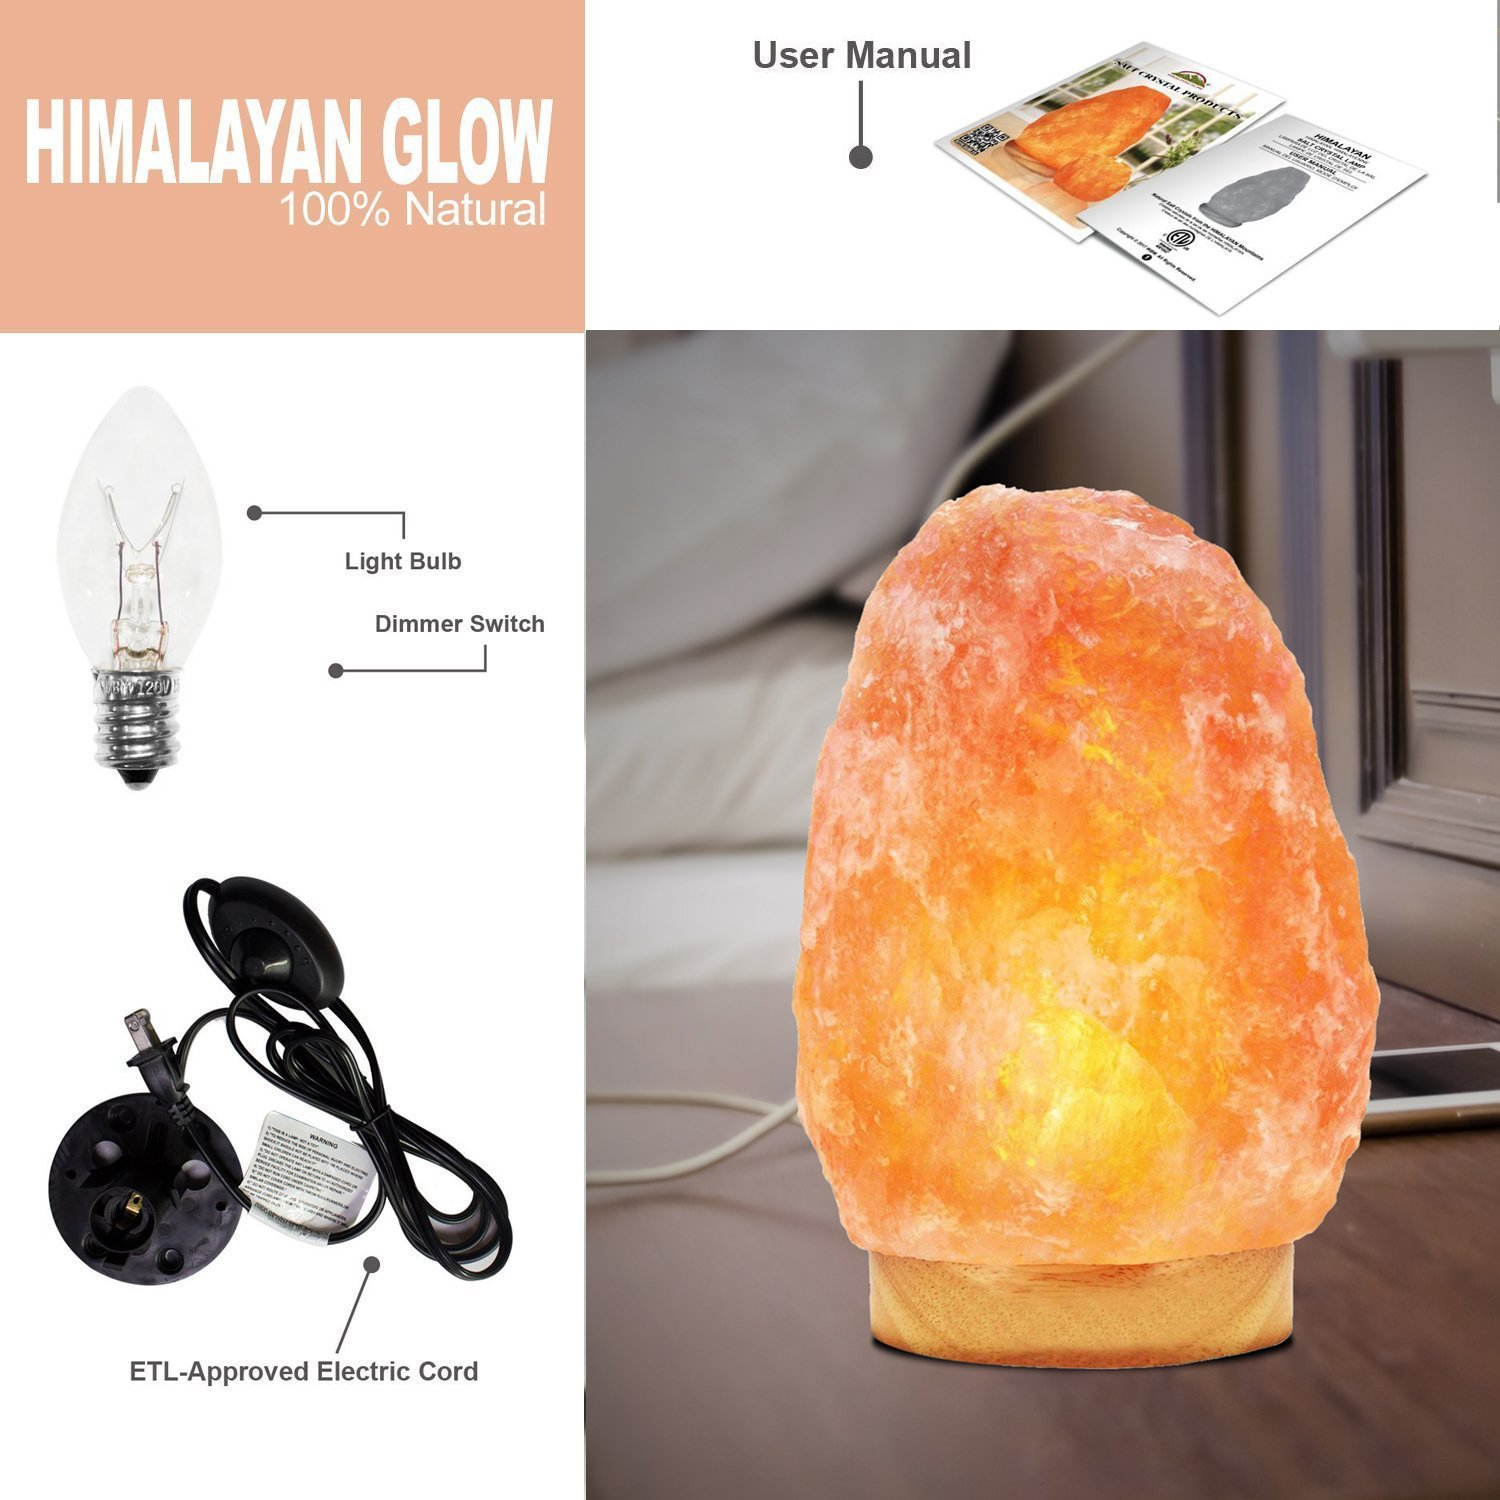 Himalayan Glow Salt Lamp, 1003 Extra large himalayan salt lamp, Dimmable Floor lamp with Neem Wooden base   11 to 15 lbs by WBM by Himalayan Glow (Image #9)